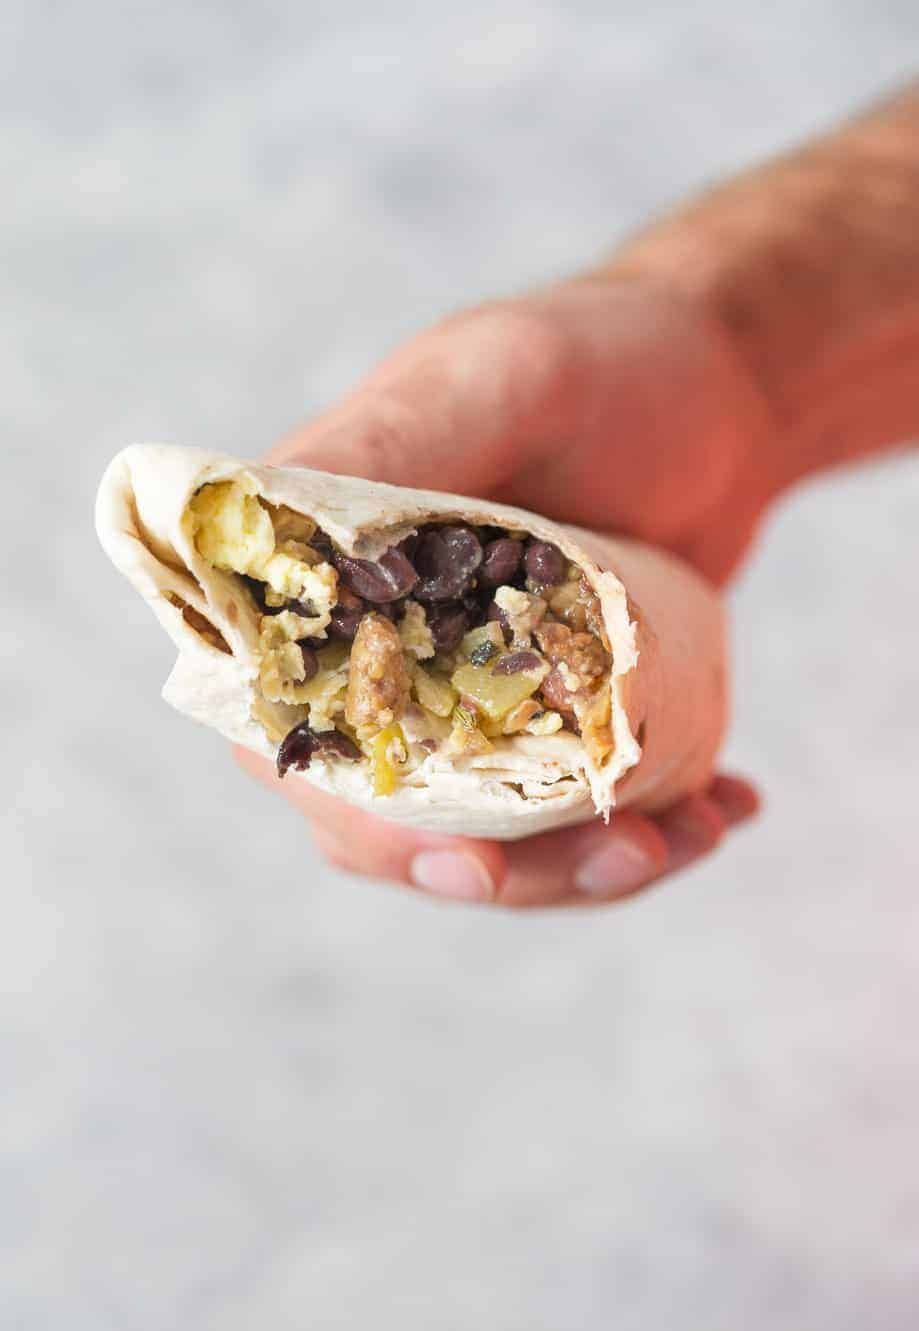 breakfast burrito with bite out of it